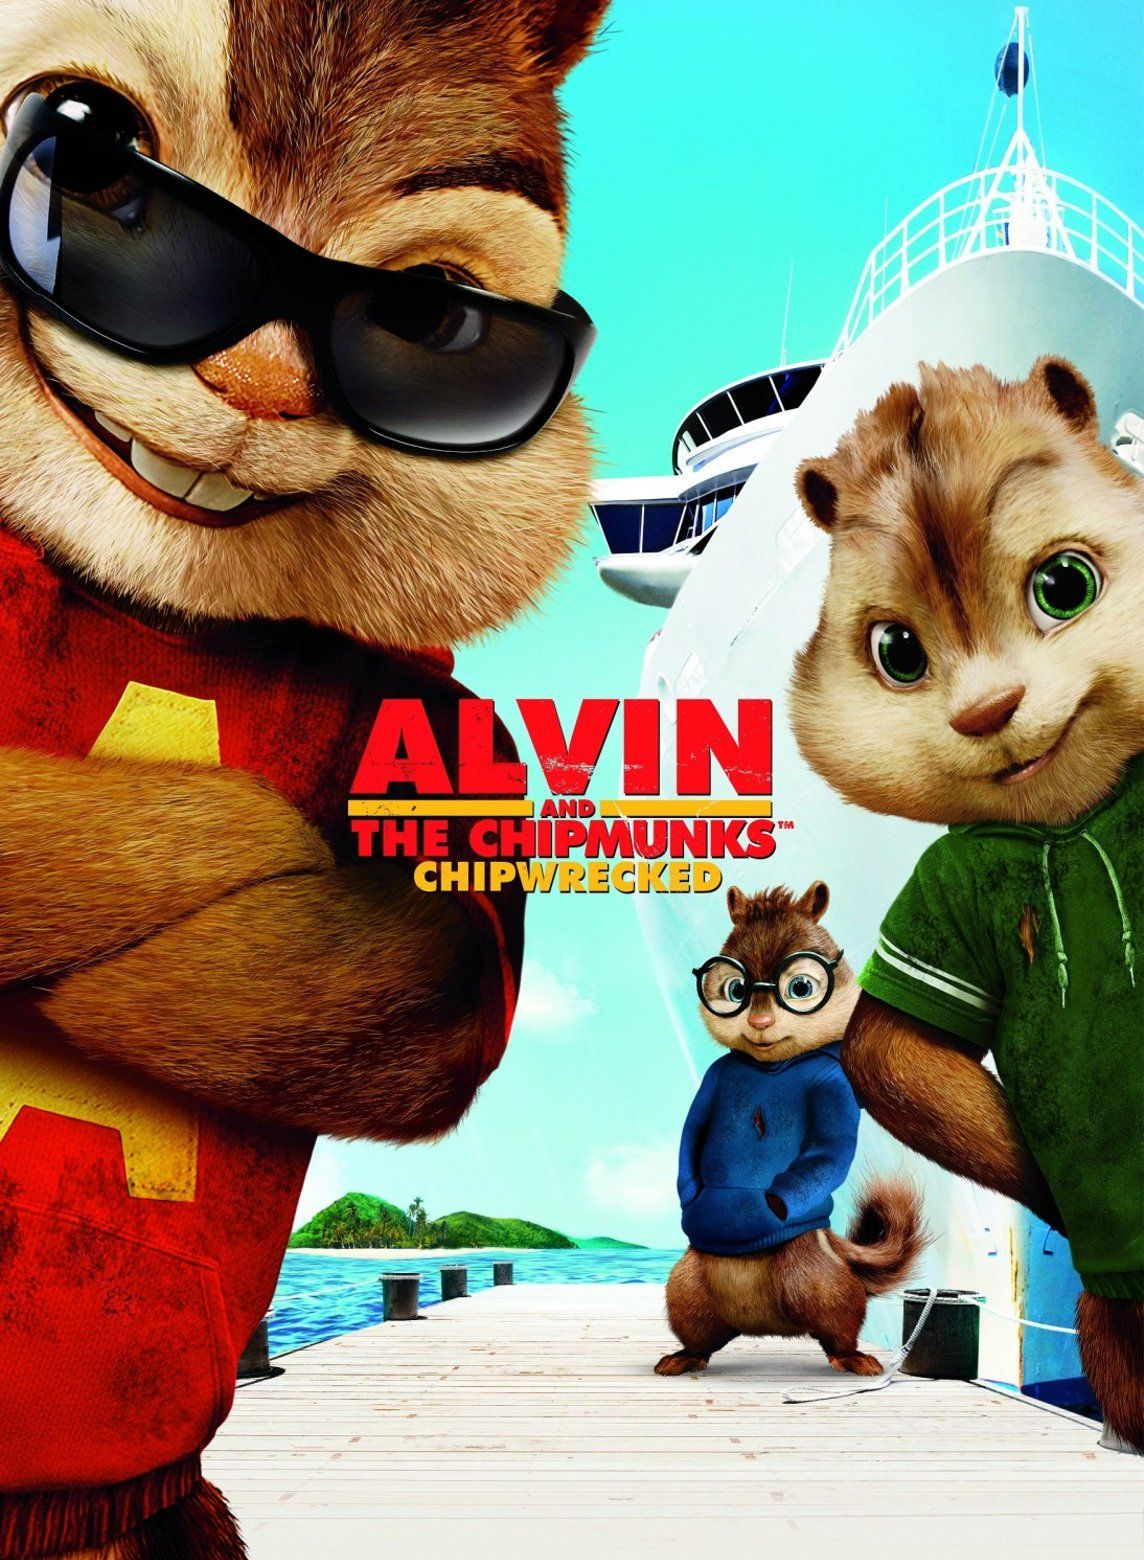 Alvin And The Chipmunks Chip Wrecked With Images Chipmunks